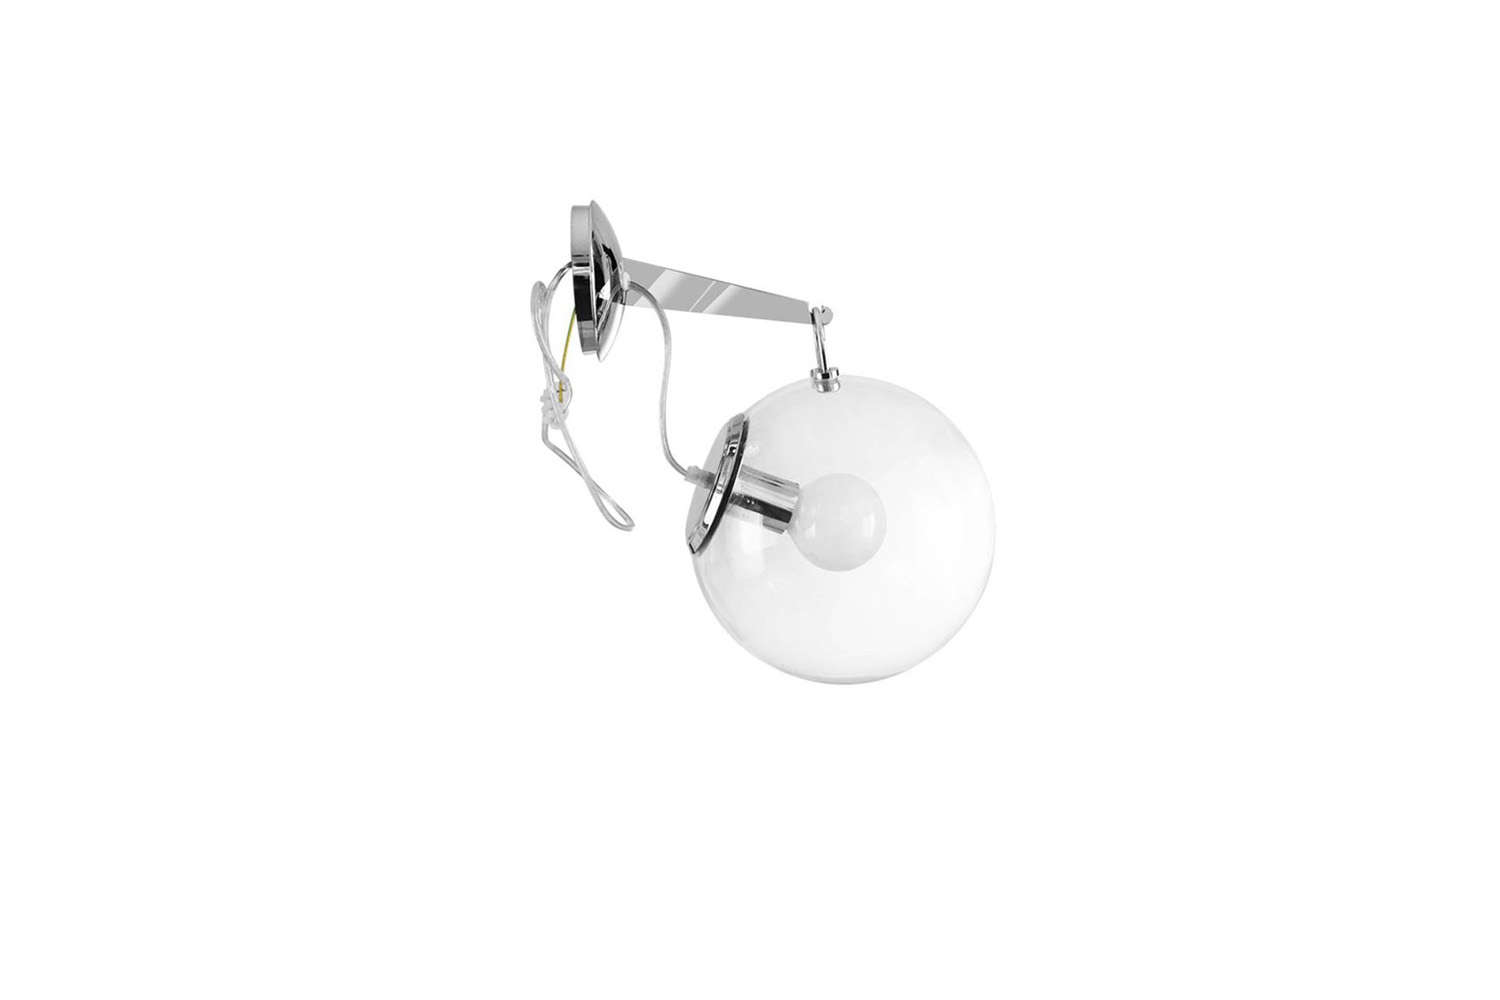 The Artemide Miconos Wall Sconce is $580 at Lumens.